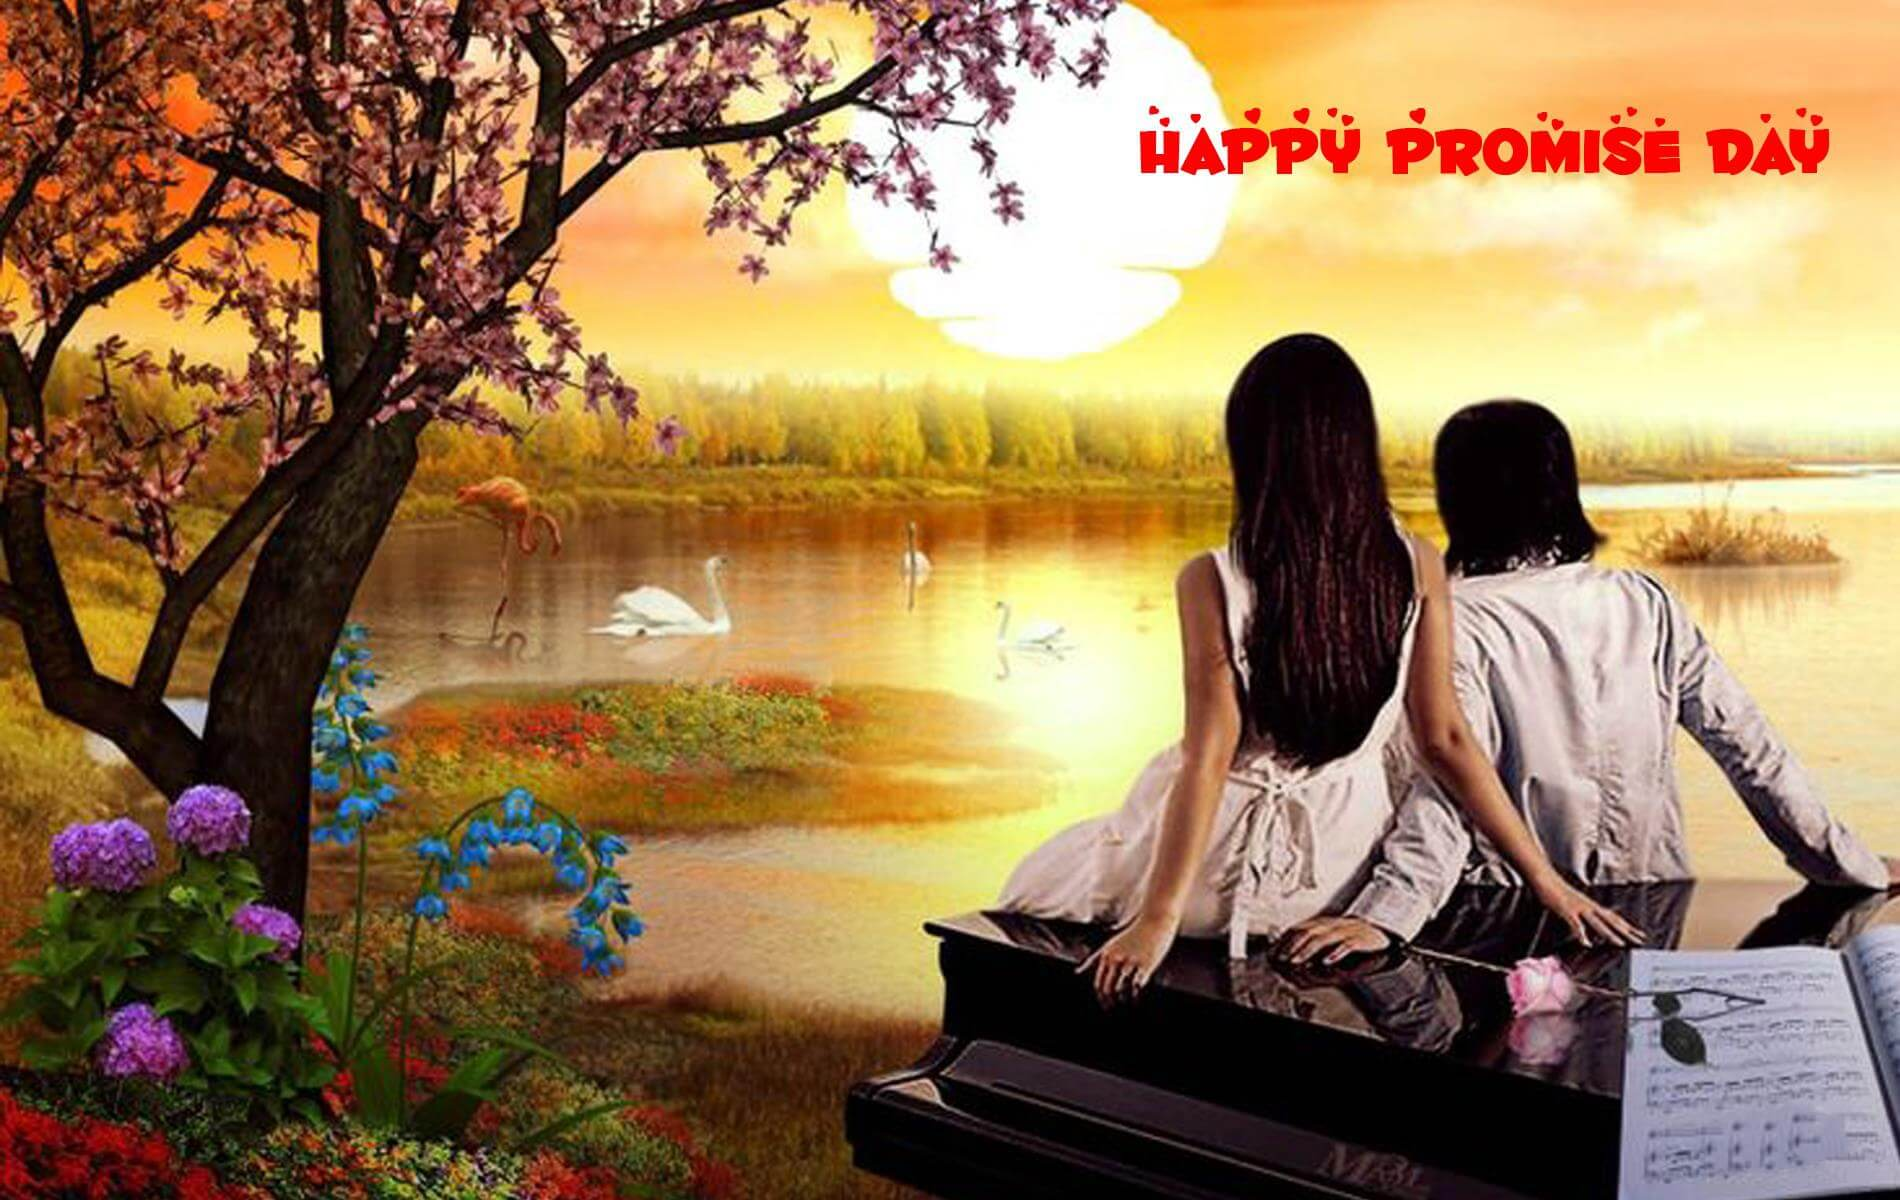 happy promise day wishes love valentine nature couples image hd wallpaper